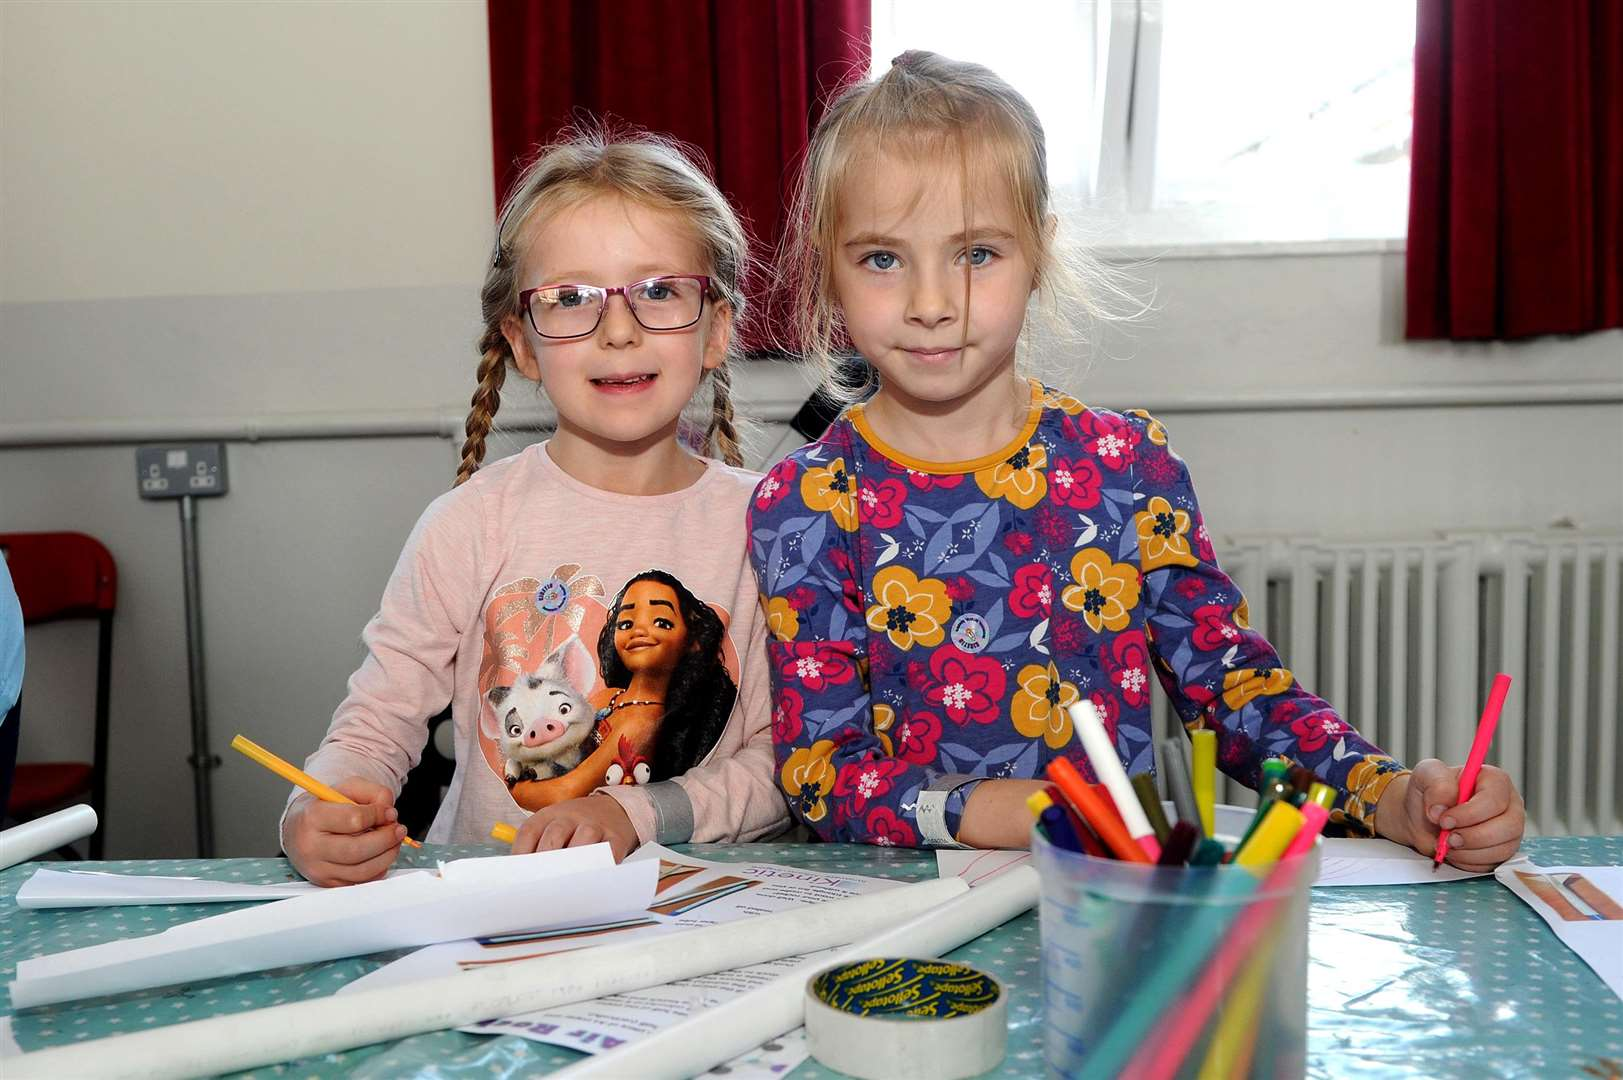 Sophie Codd, six, and Millie Landsdell, six, making rockets. PICTURE: Mecha Morton